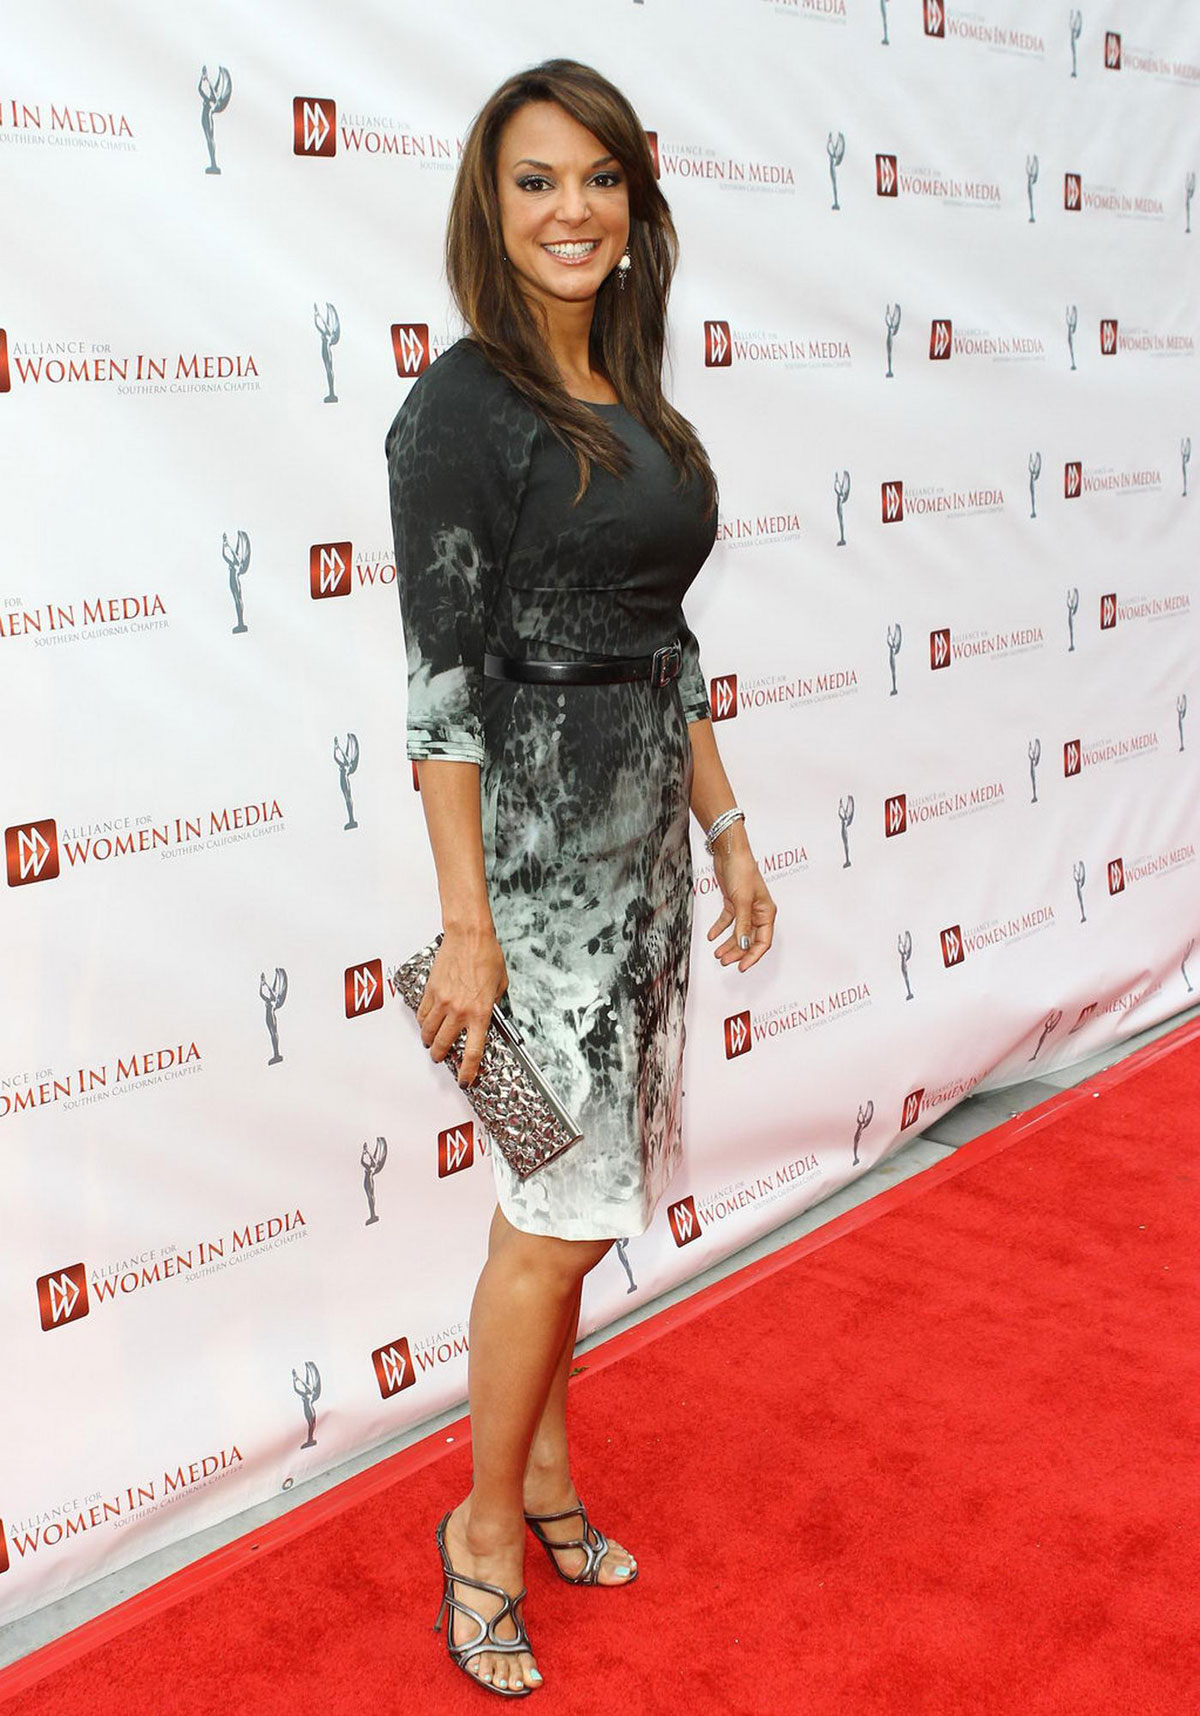 EVA LaRUE at 55th Annu...